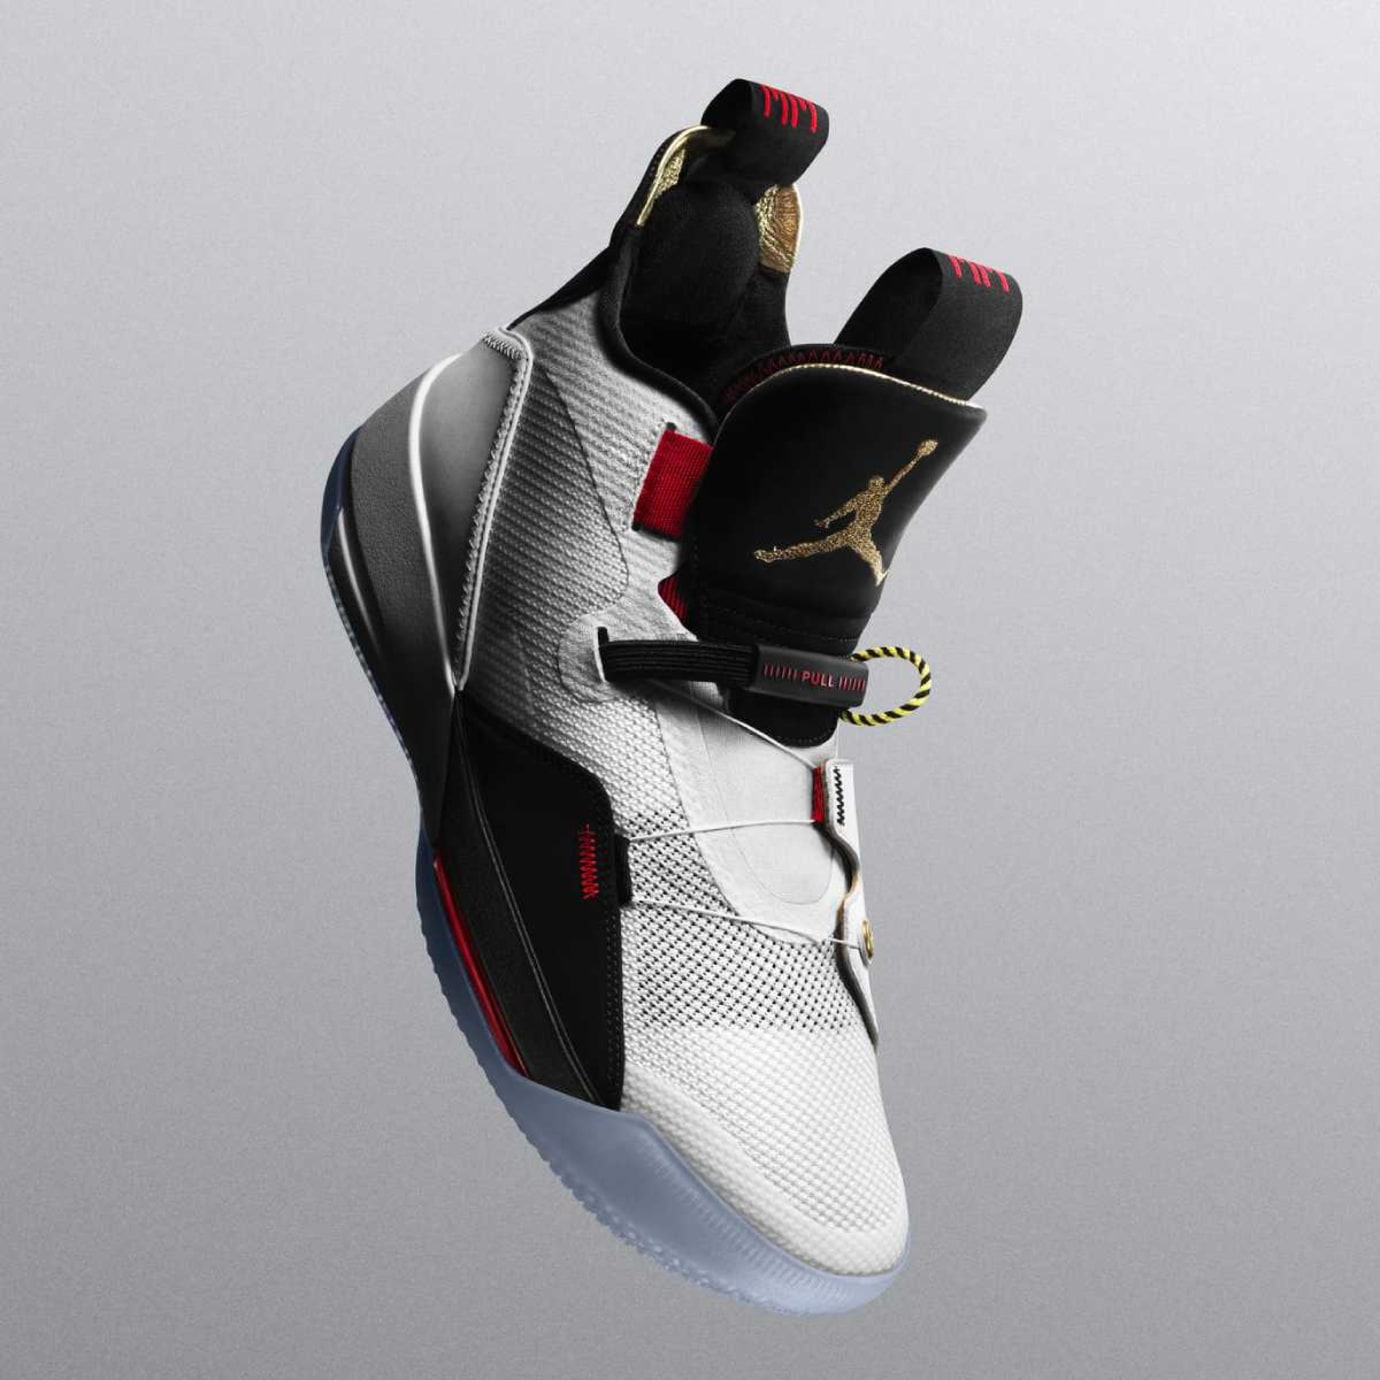 Air Jordan 33 White Black Red Release Date Front